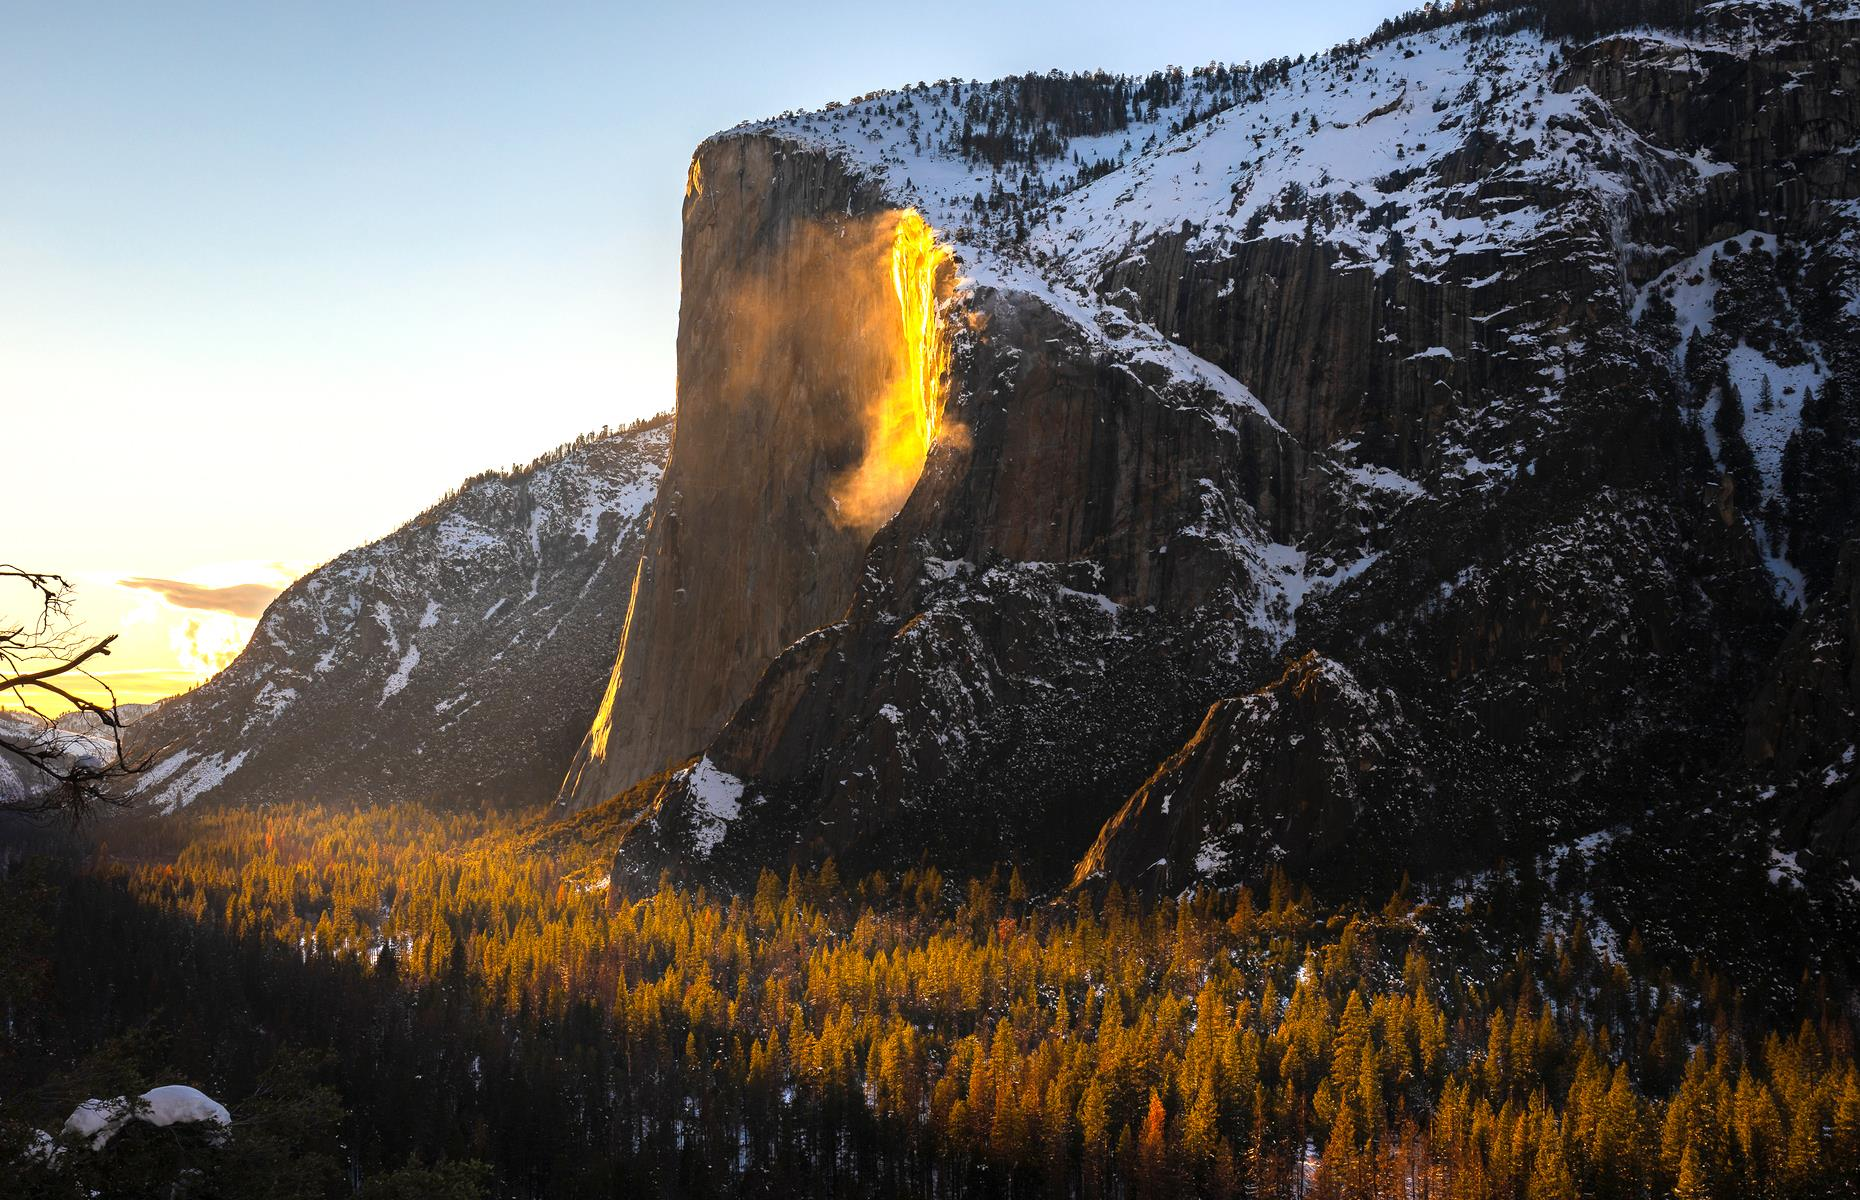 Slide 17 of 41: Horsetail Fall – a seasonal cascade rushing over the eastern side of El Capitan – is beautiful whenever it makes an appearance. But, come late February, it's extra special. When the conditions are just so and the falls are backlit by the setting sun, it appears as though a thick stream of lava is spilling over the side of the mountain. Unsurprisingly, the ethereal spectacle usually draws in the crowds.